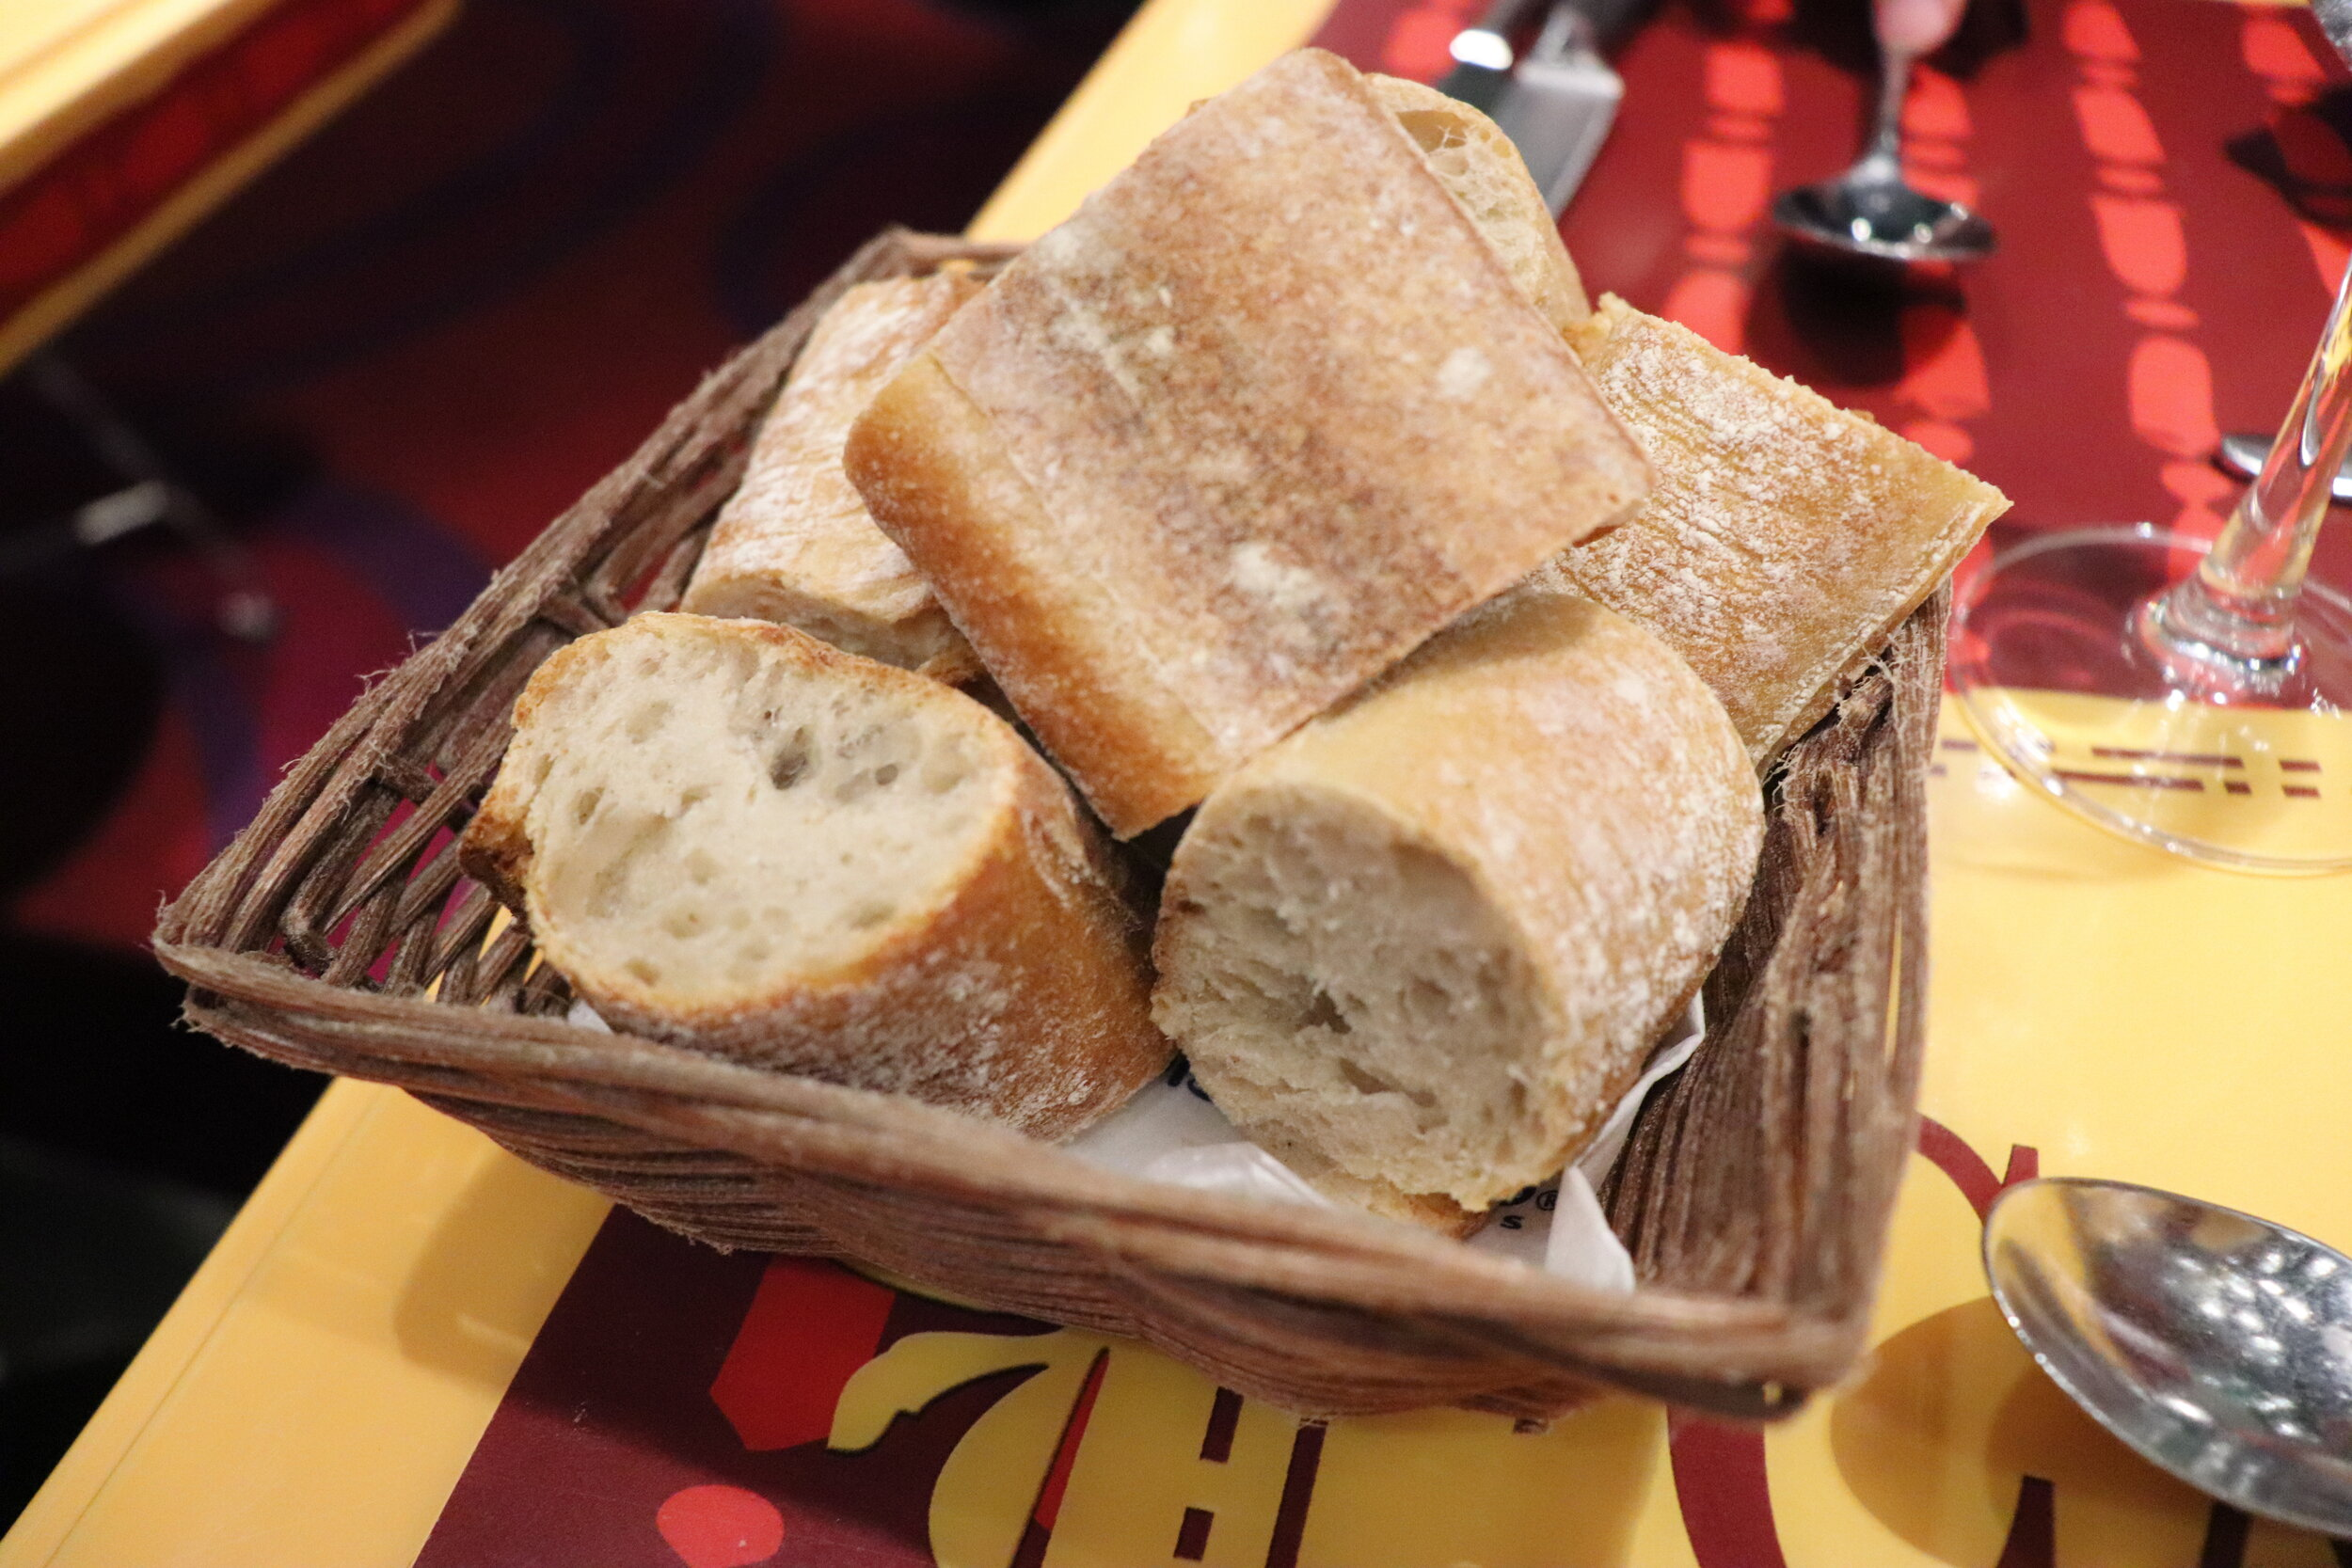 A simple french baguette with the meal.